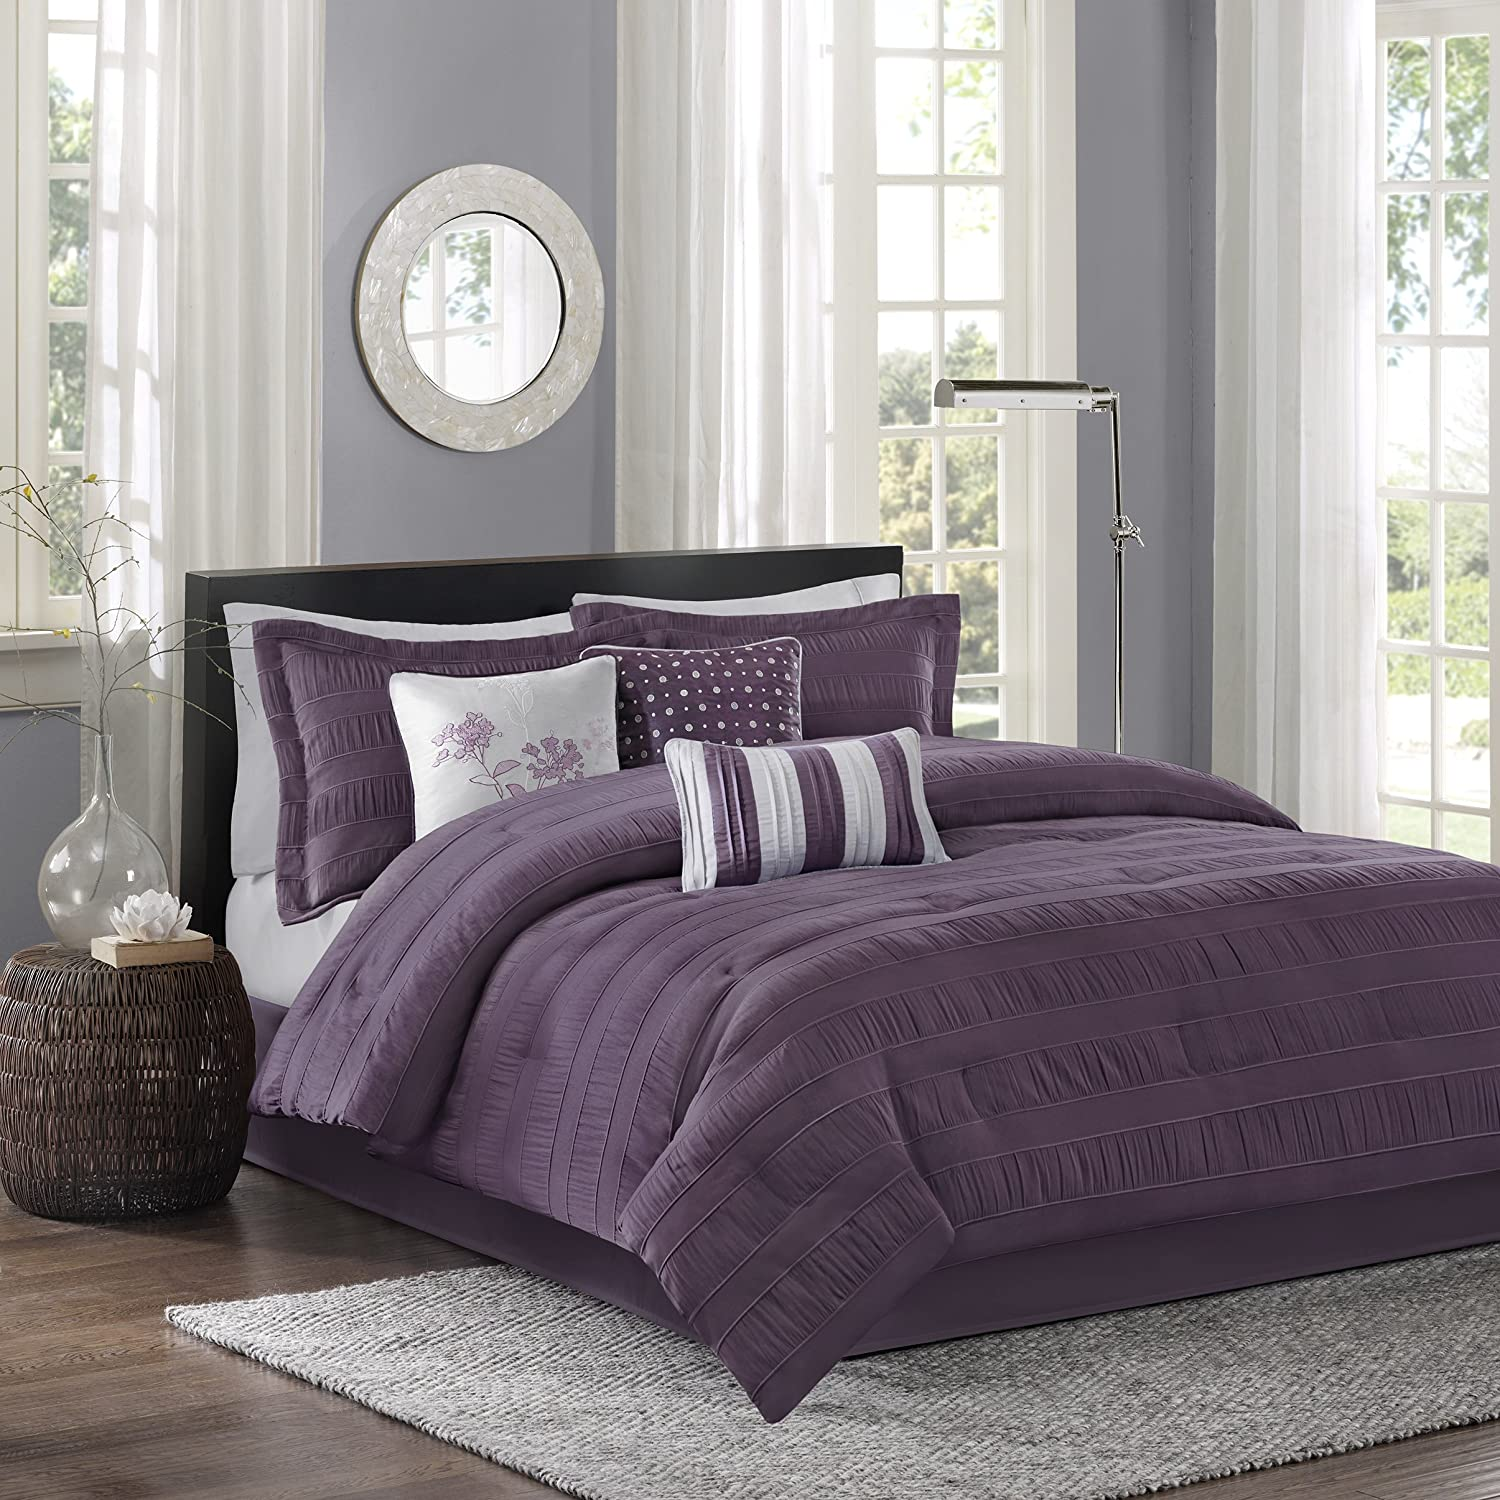 gold is moroccan pin and this geometric print just bed purple bedding sets has set style that breathtaking a